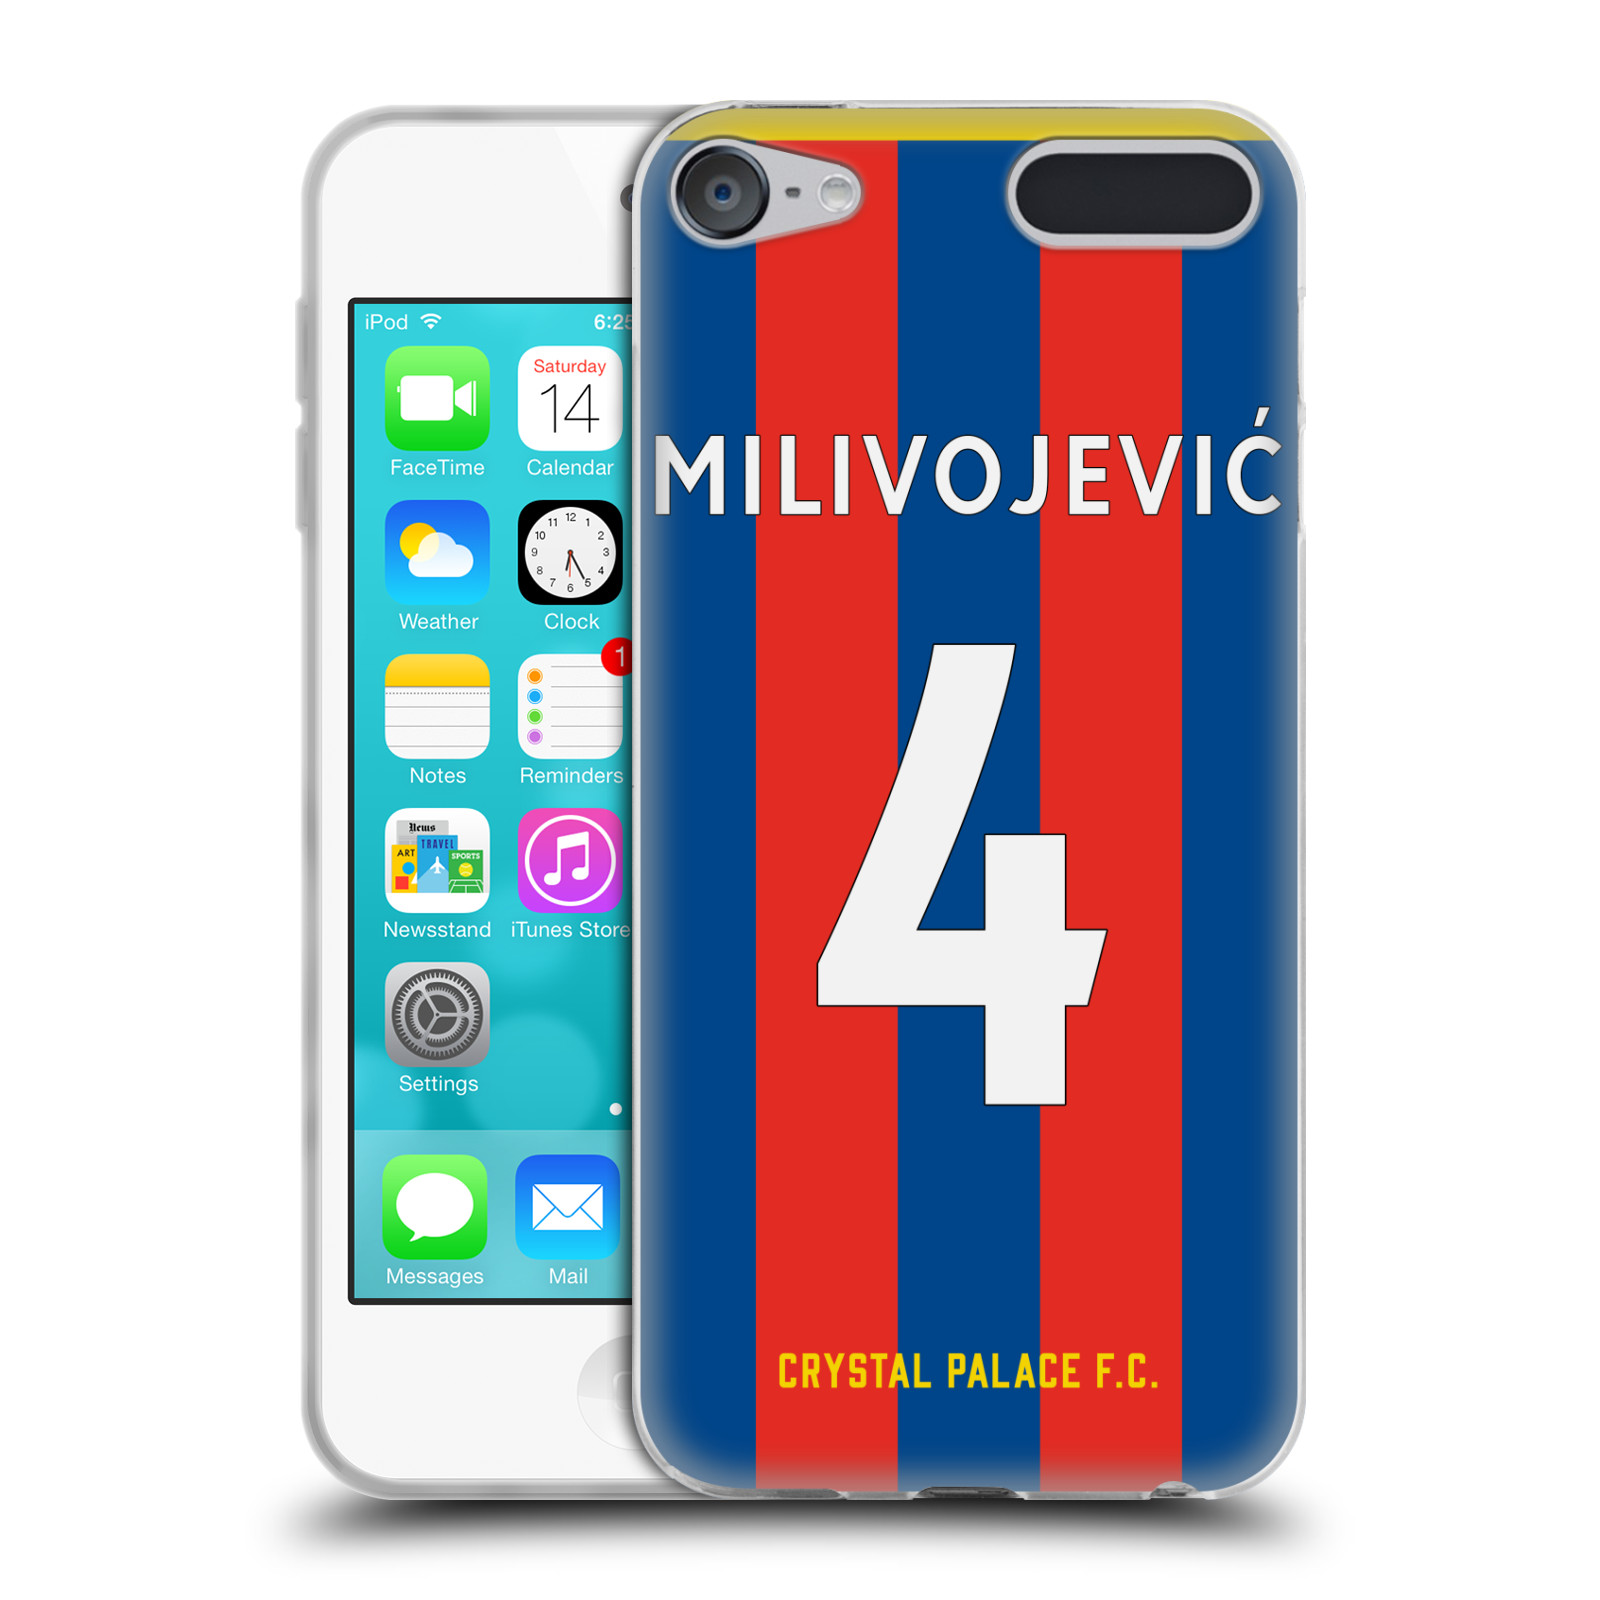 OFFICIAL-CRYSTAL-PALACE-FC-2017-18-HOME-KIT-1-GEL-CASE-FOR-APPLE-iPOD-TOUCH-MP3